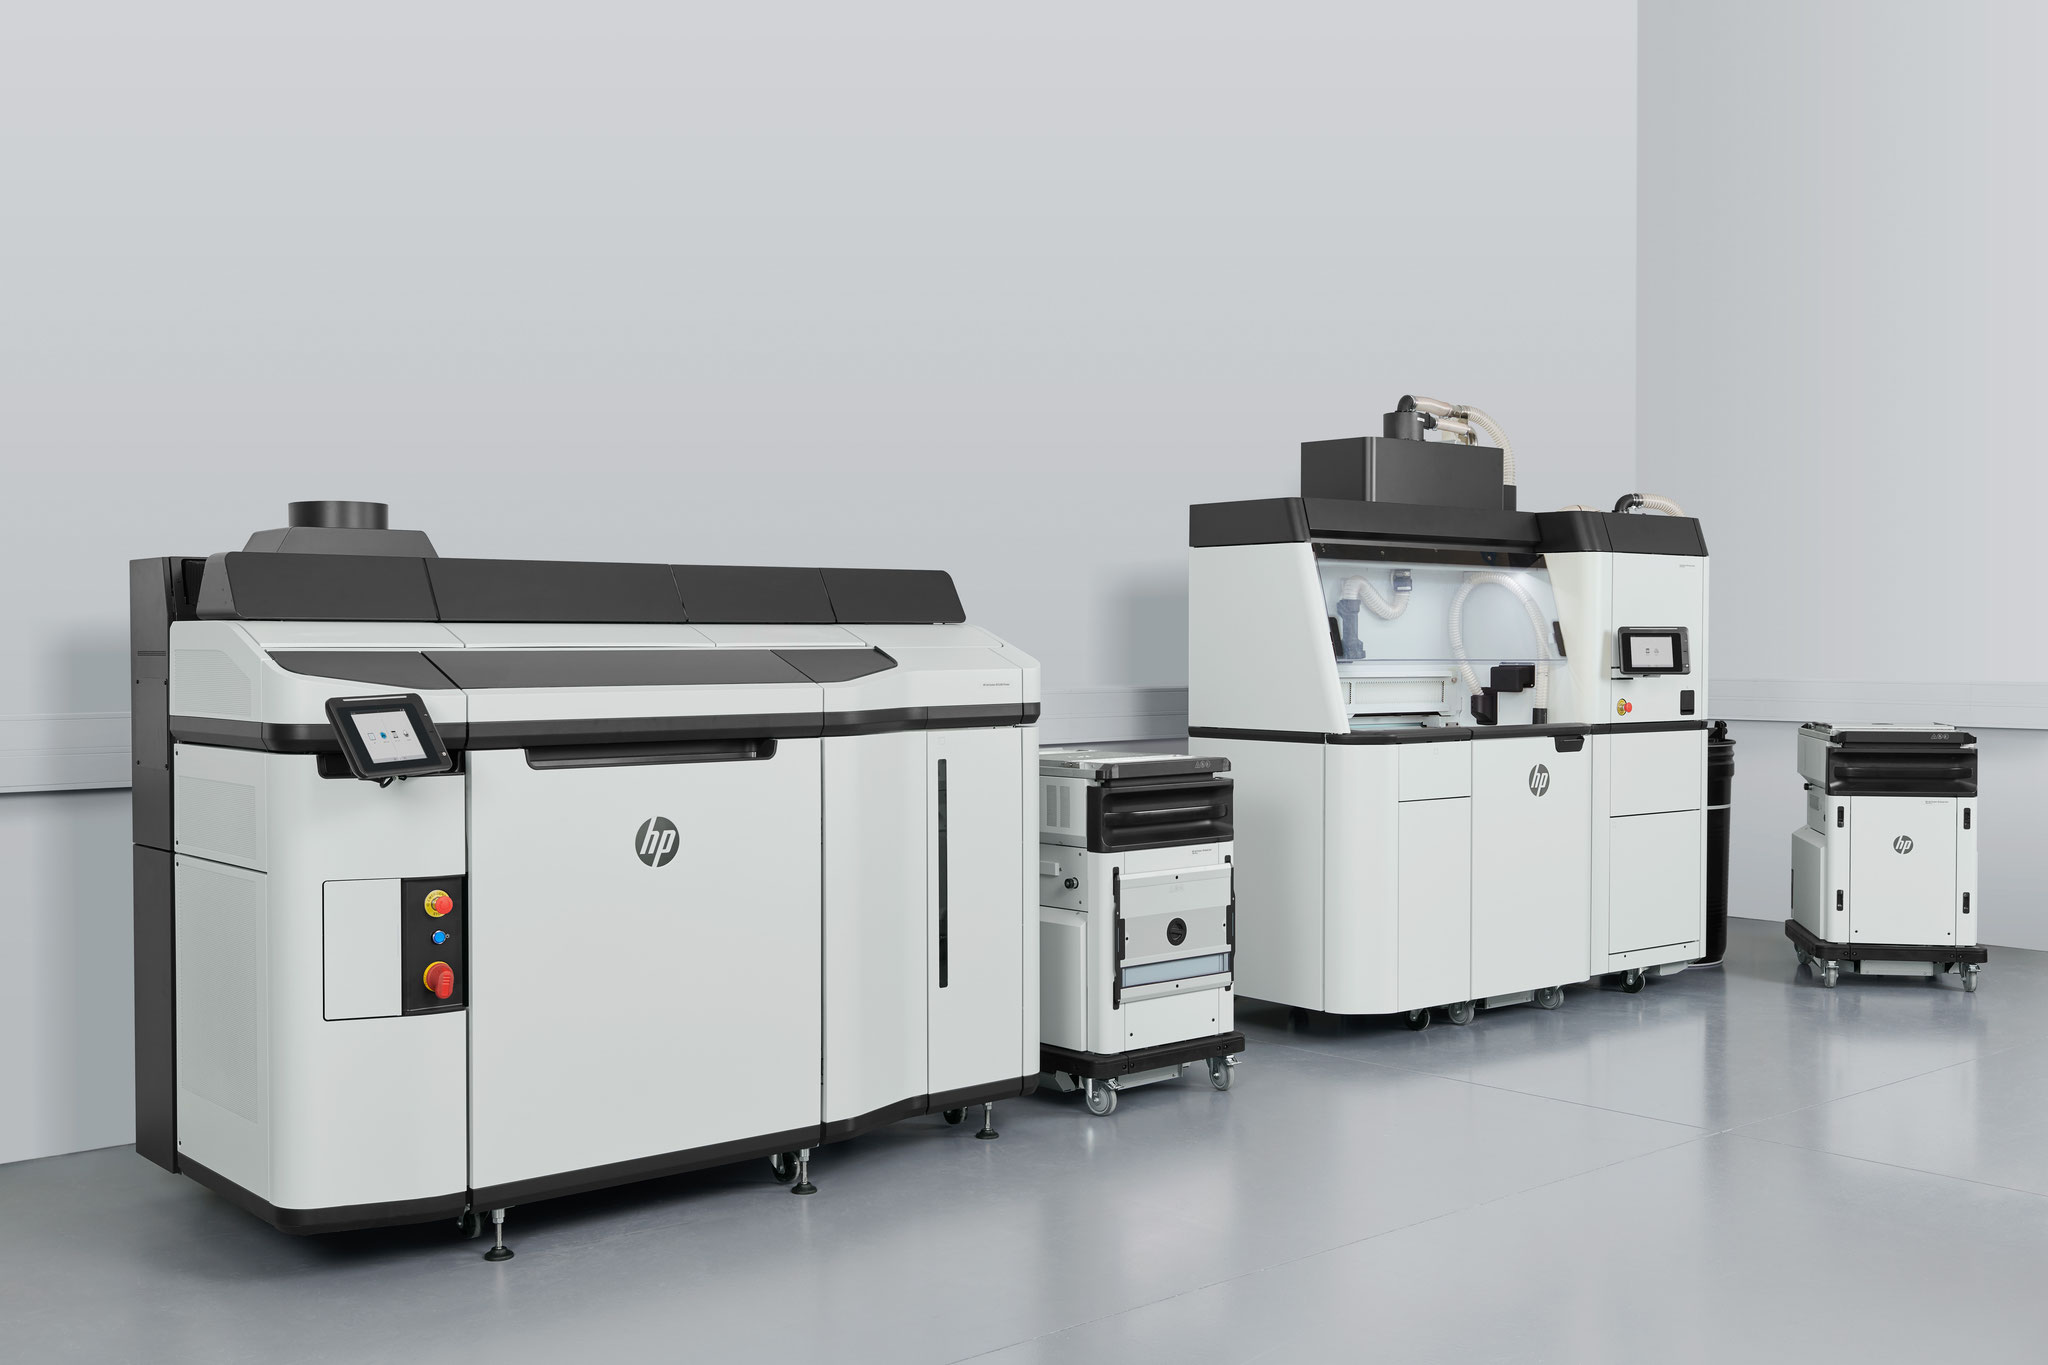 HP Jet Fusion 5200 Series mit Build Unit + 3D Processing Station